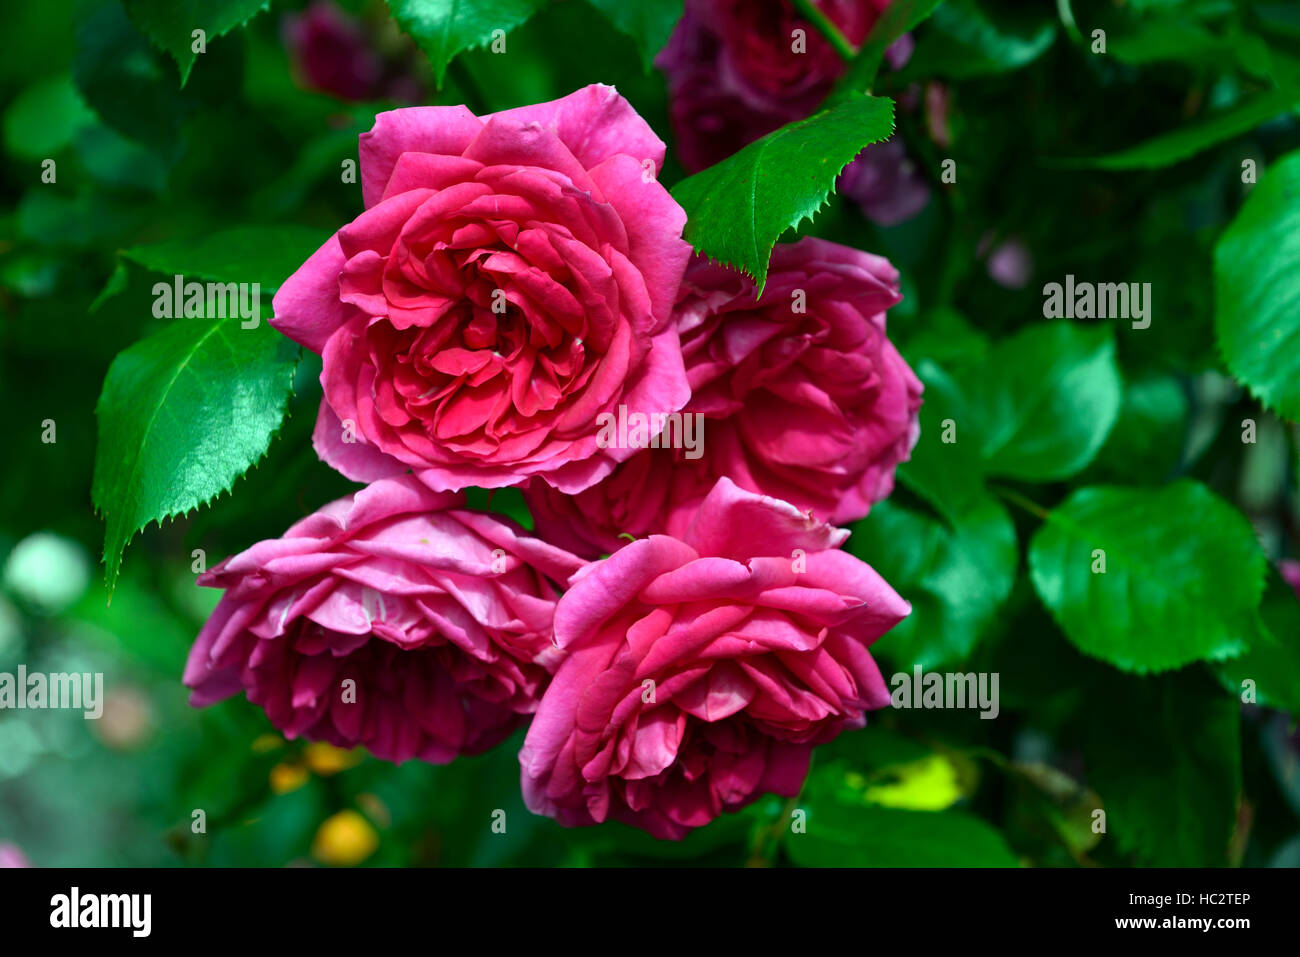 Rosa parade rose pink rose roses climber climbing flowering flower rosa parade rose pink rose roses climber climbing flowering flower flowers fragrant scented rm floral mightylinksfo